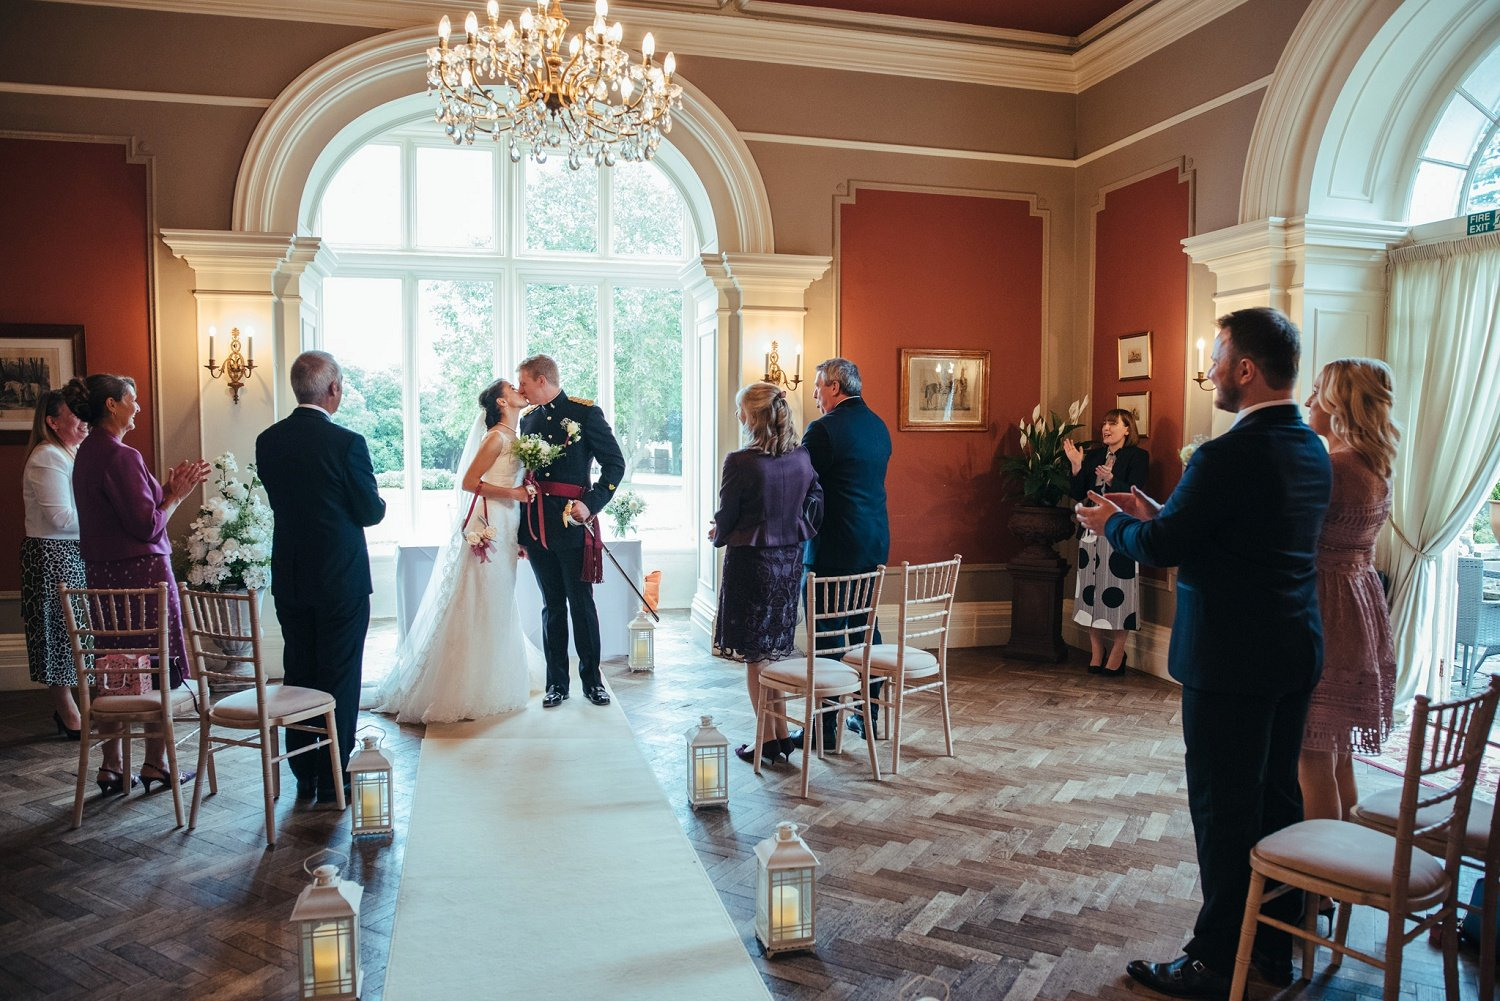 First kiss in the ceremony room at Glewstone COurt in Herefordshire